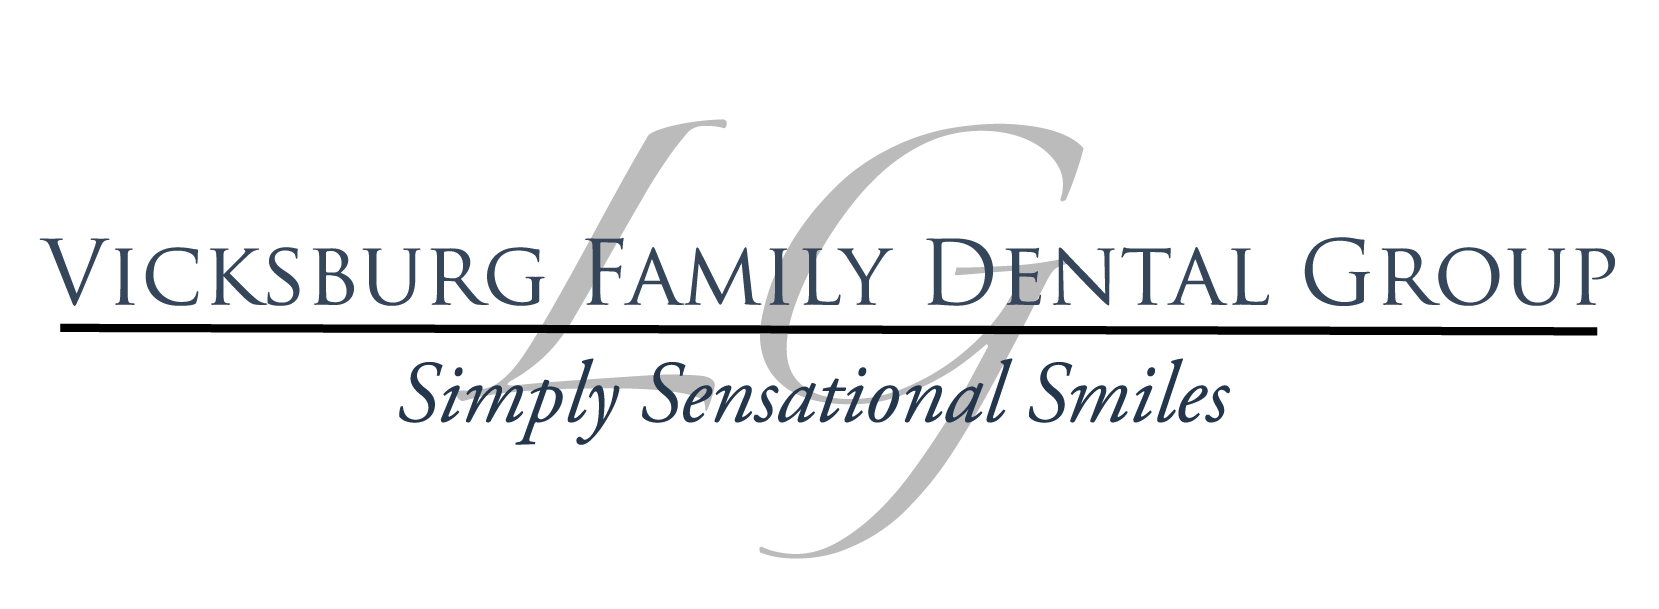 Vicksburg Family Dental Group